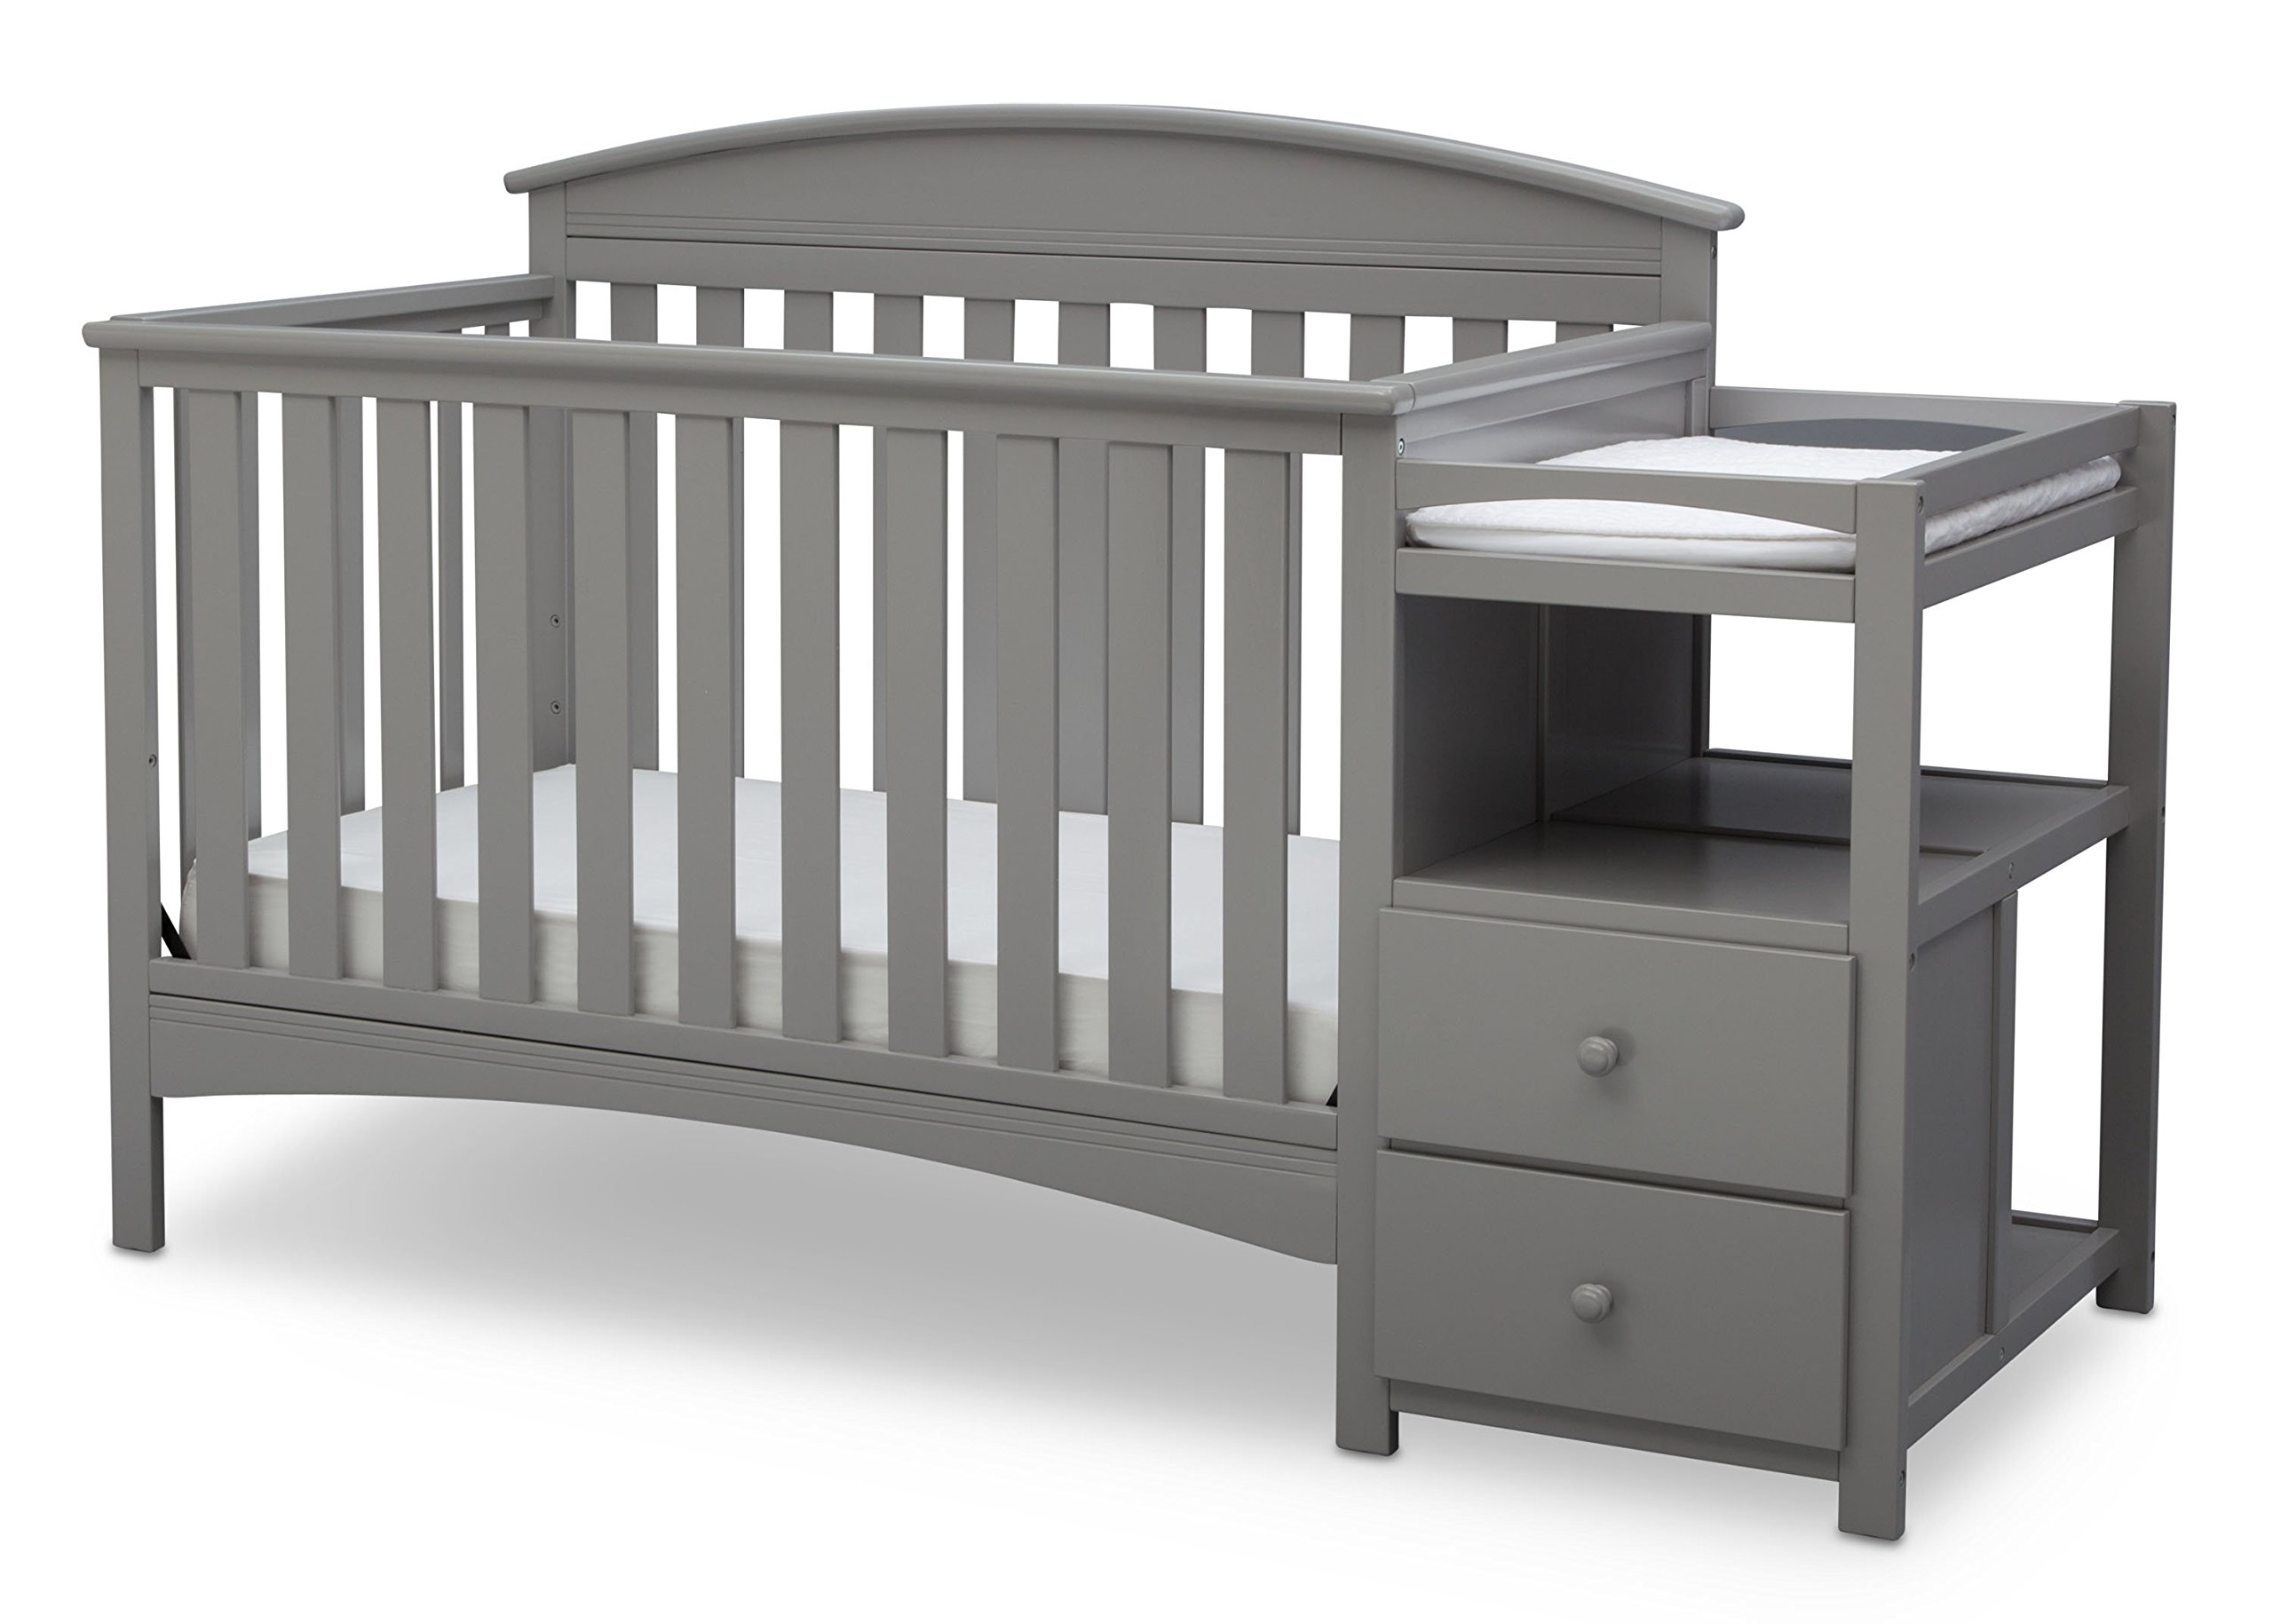 Delta Children Abby Convertible Crib and Changer, Grey by Delta Children